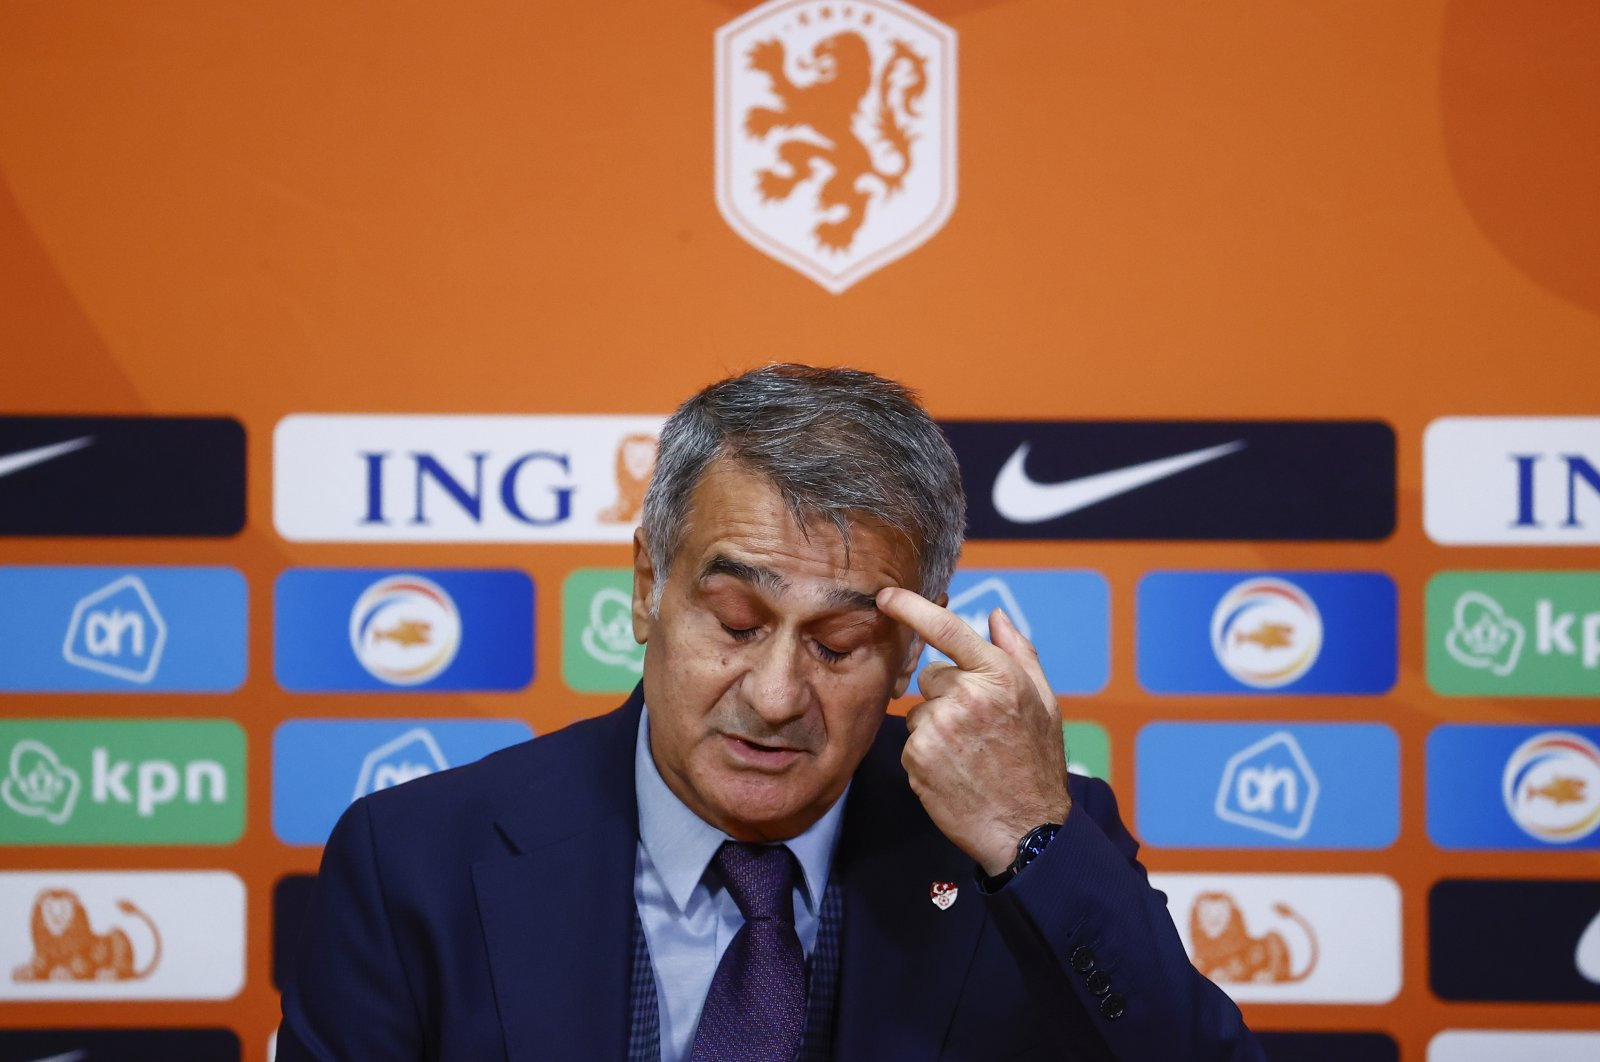 Şenol Güneş gestures at a post-match press conference, in Amsterdam, Netherlands, Sept. 8, 2021. (AA PHOTO)